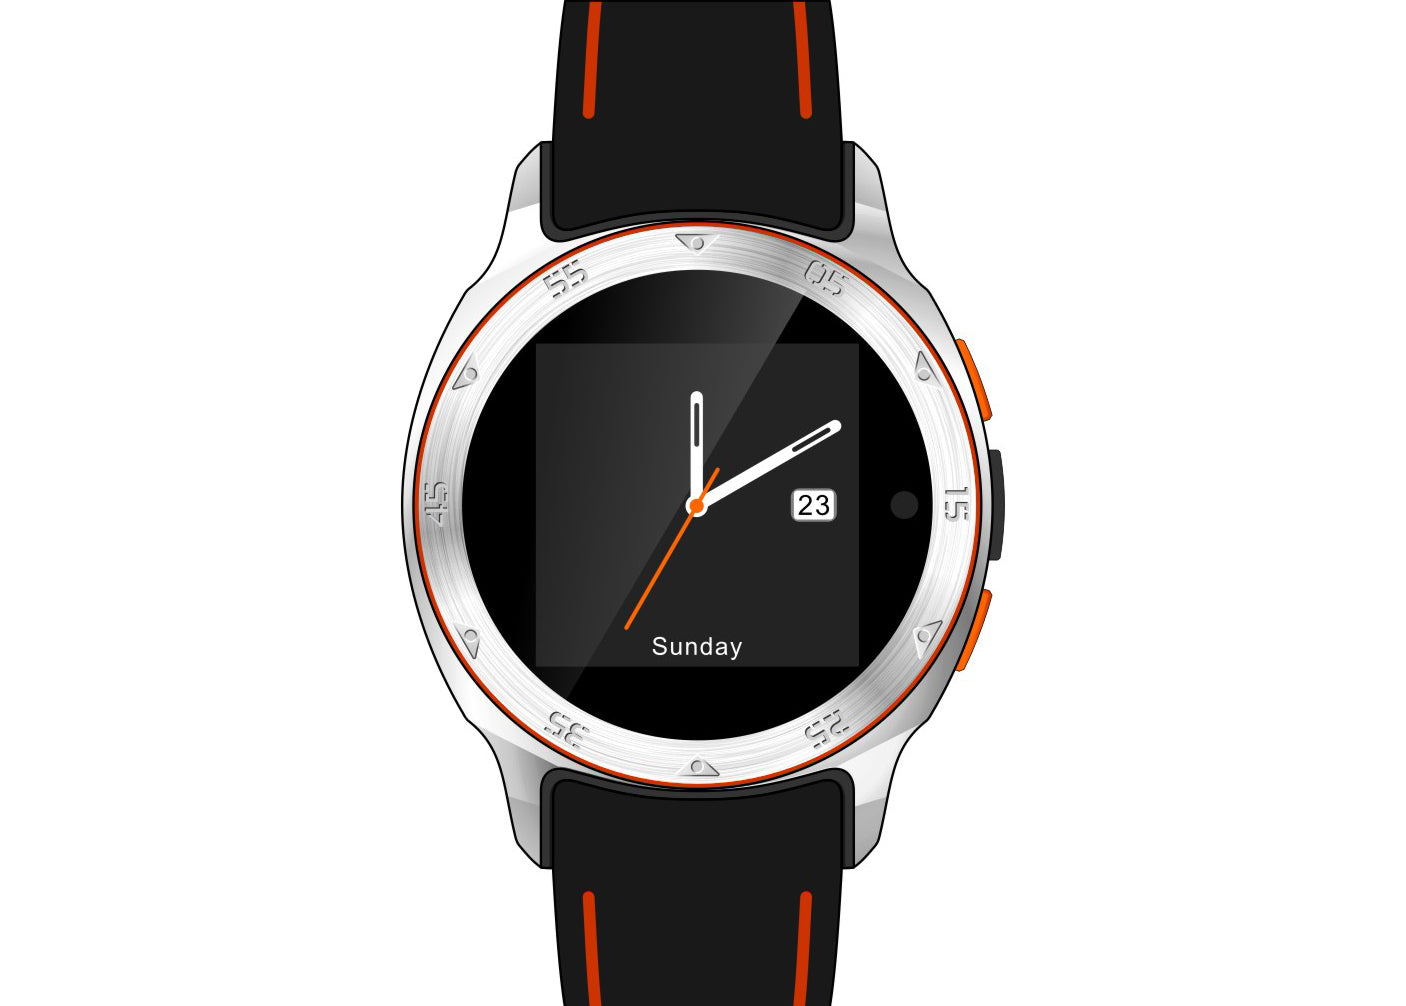 Smartwatch Smartphone ZGPAX S7 1.54 Inch Android 4.4